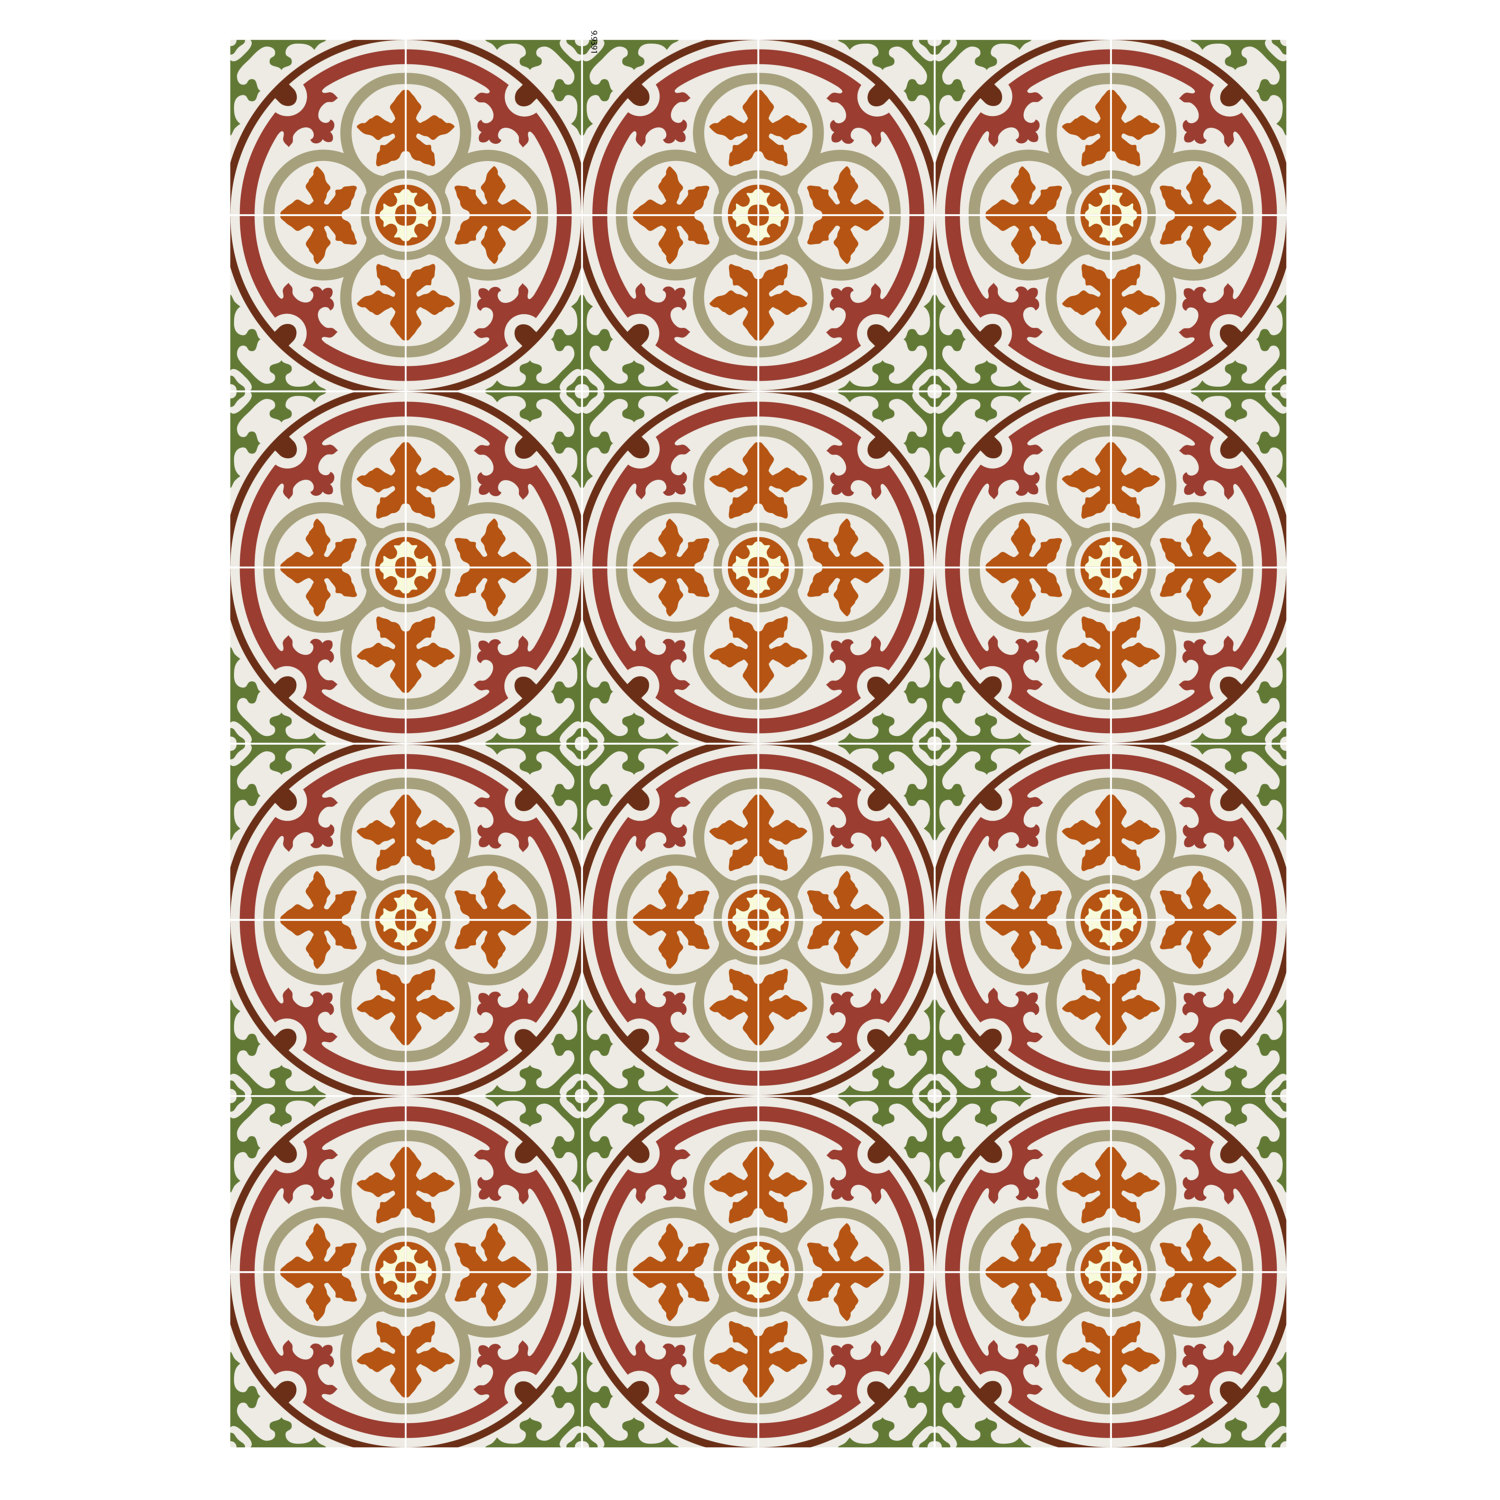 floor tile decalsstickers vinyl decals vinyl floor self - Decorative Tile